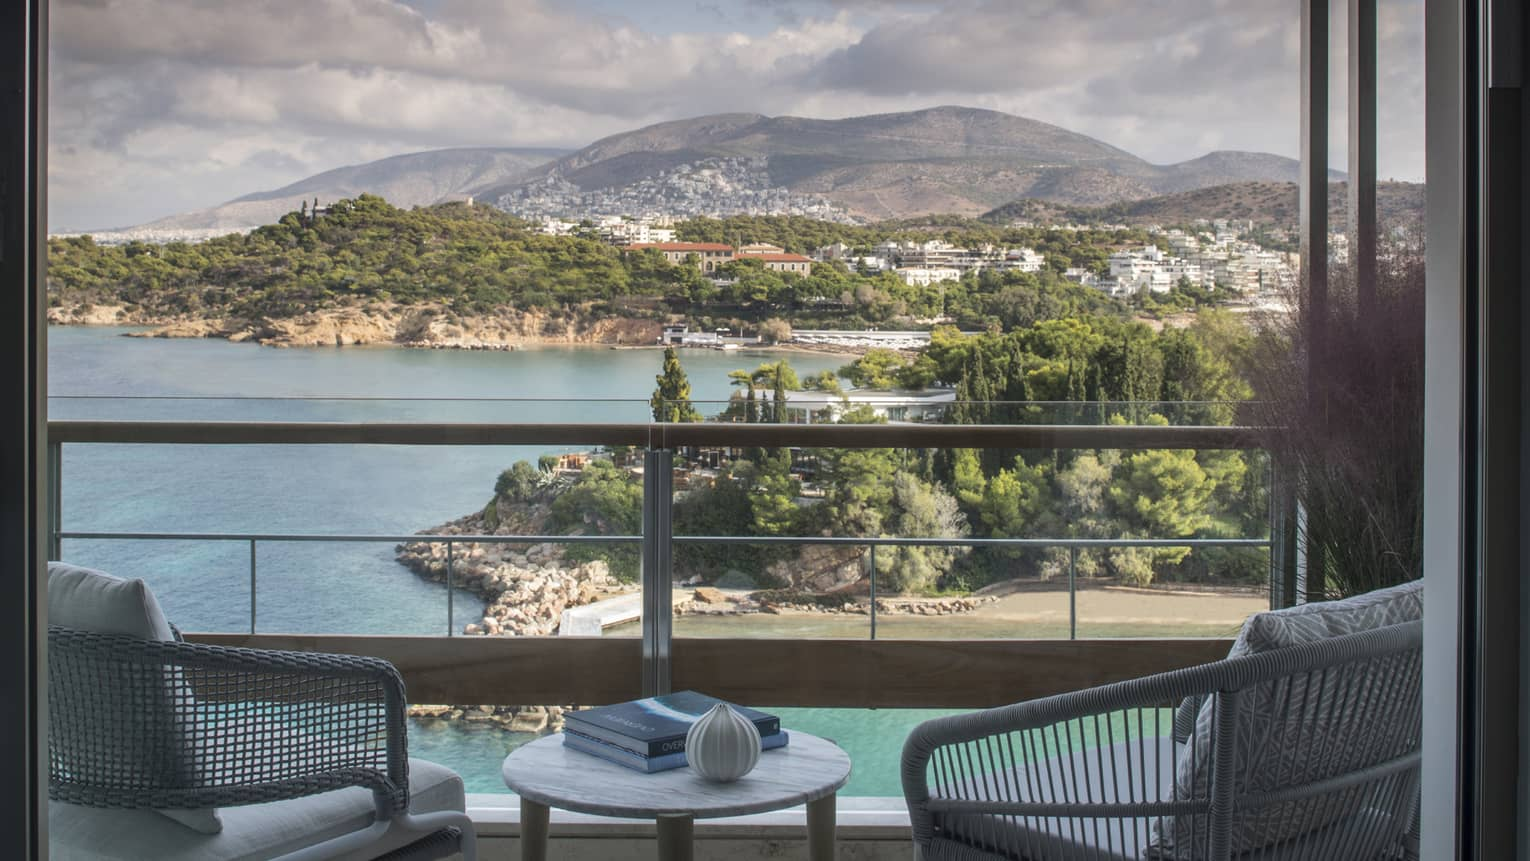 Four Seasons Astir Palace Hotel Athens balcony chairs, table with books, overlooking sea, trees, mountains